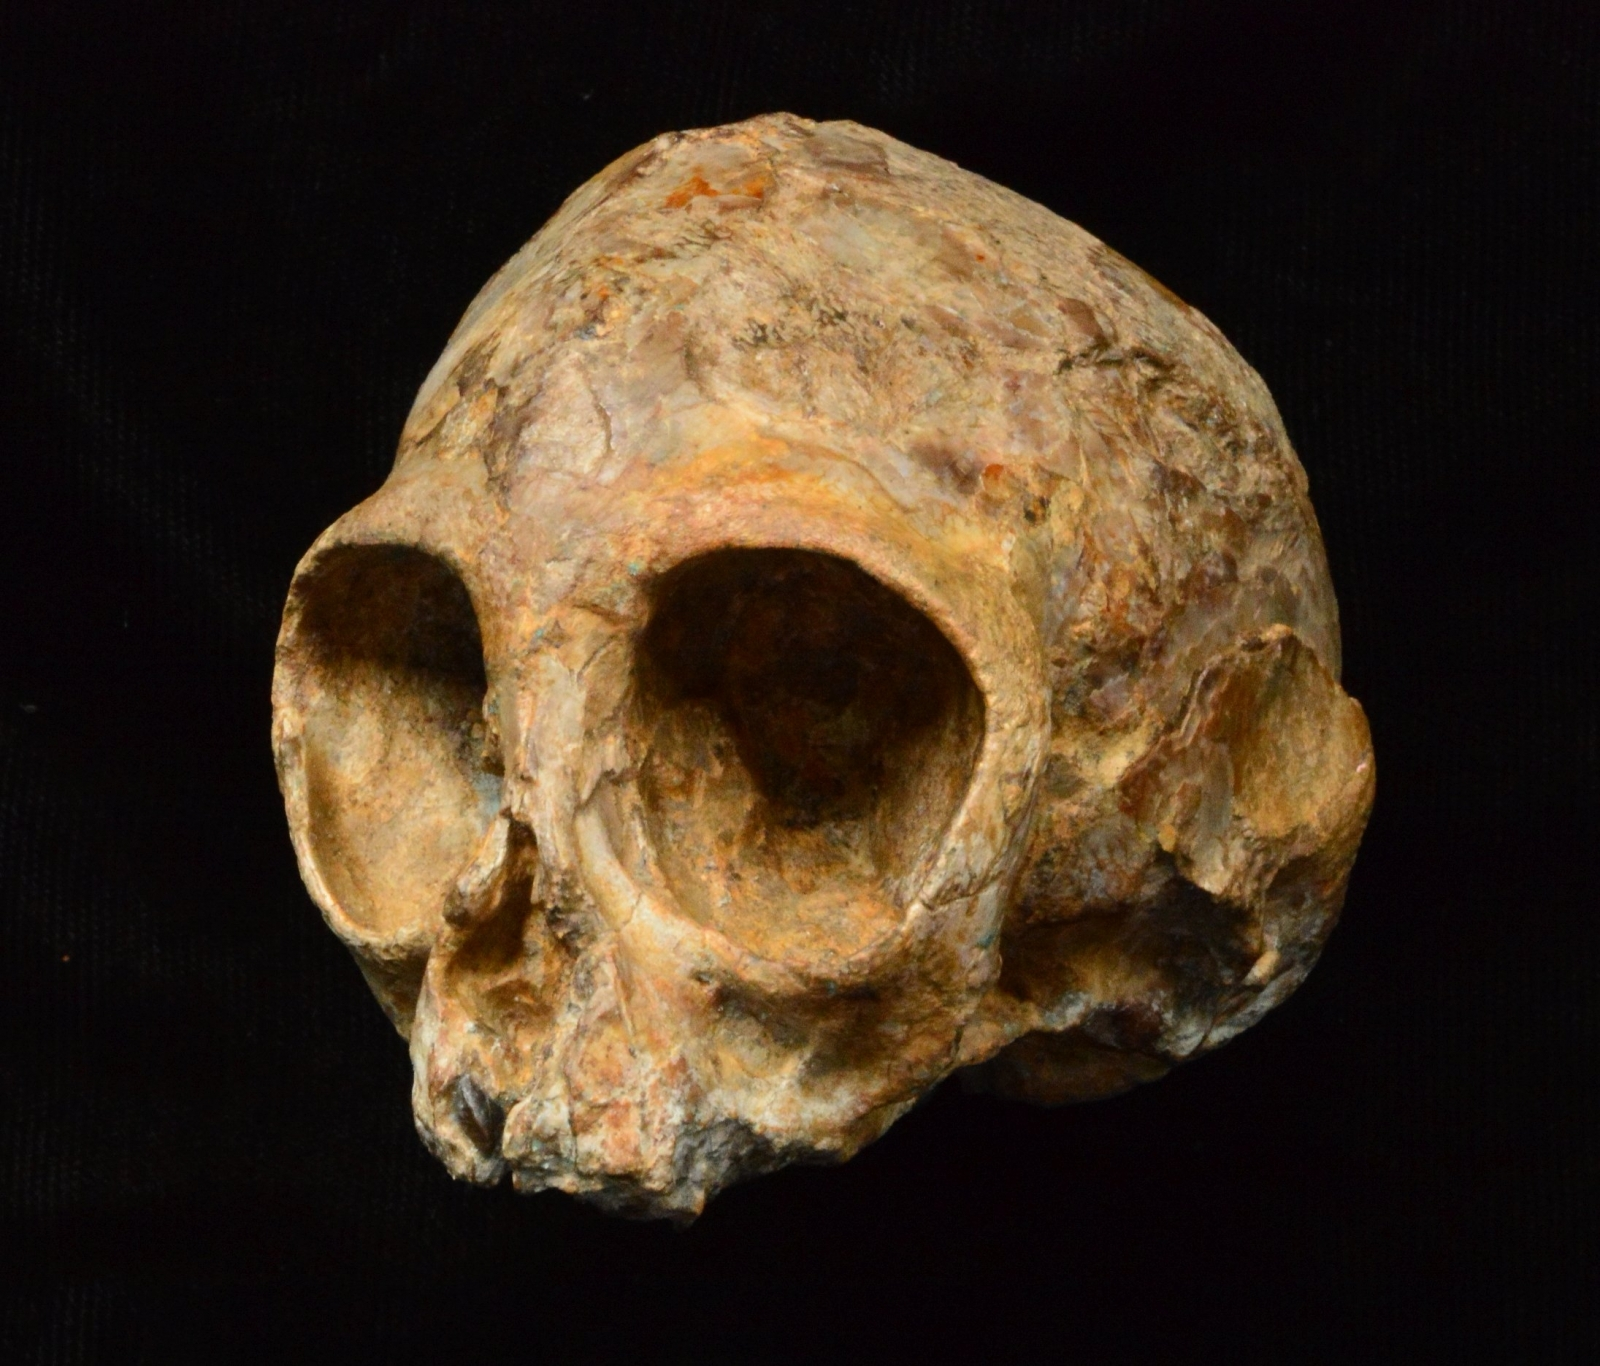 13-million-year-old skull of a new species of baby primate